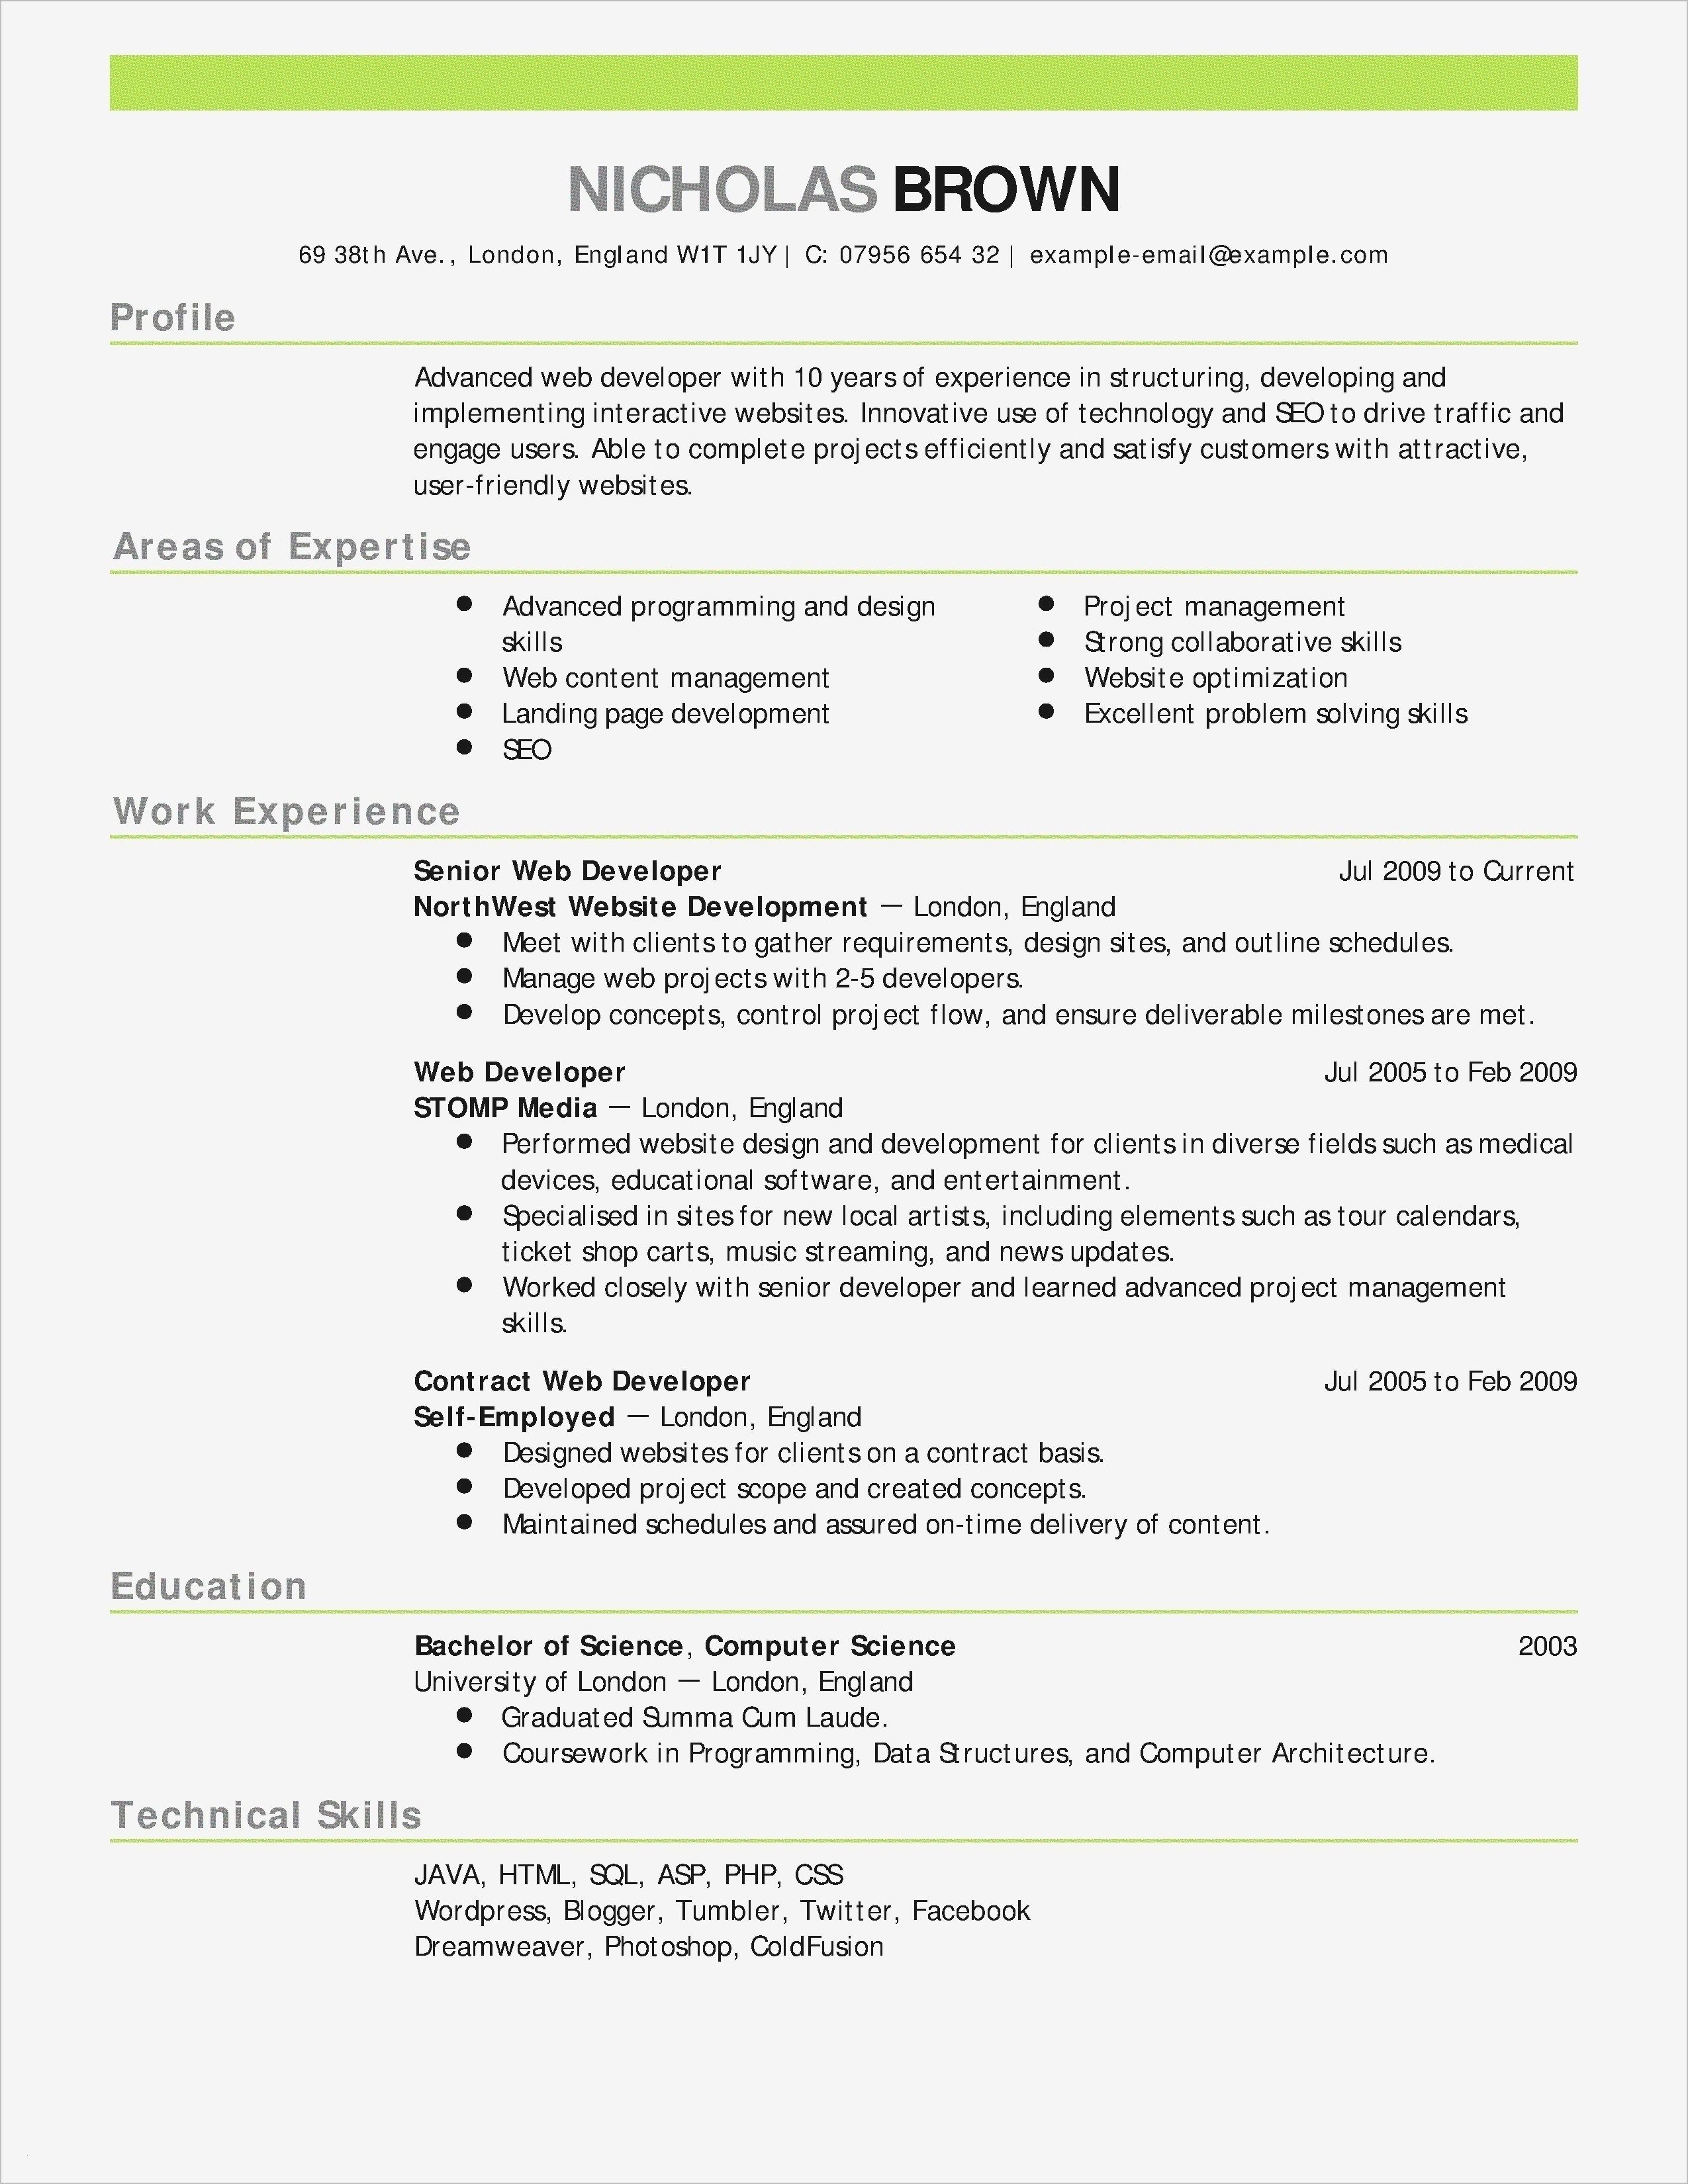 Professional Profile Resume Example To Apply Job Resume Examples